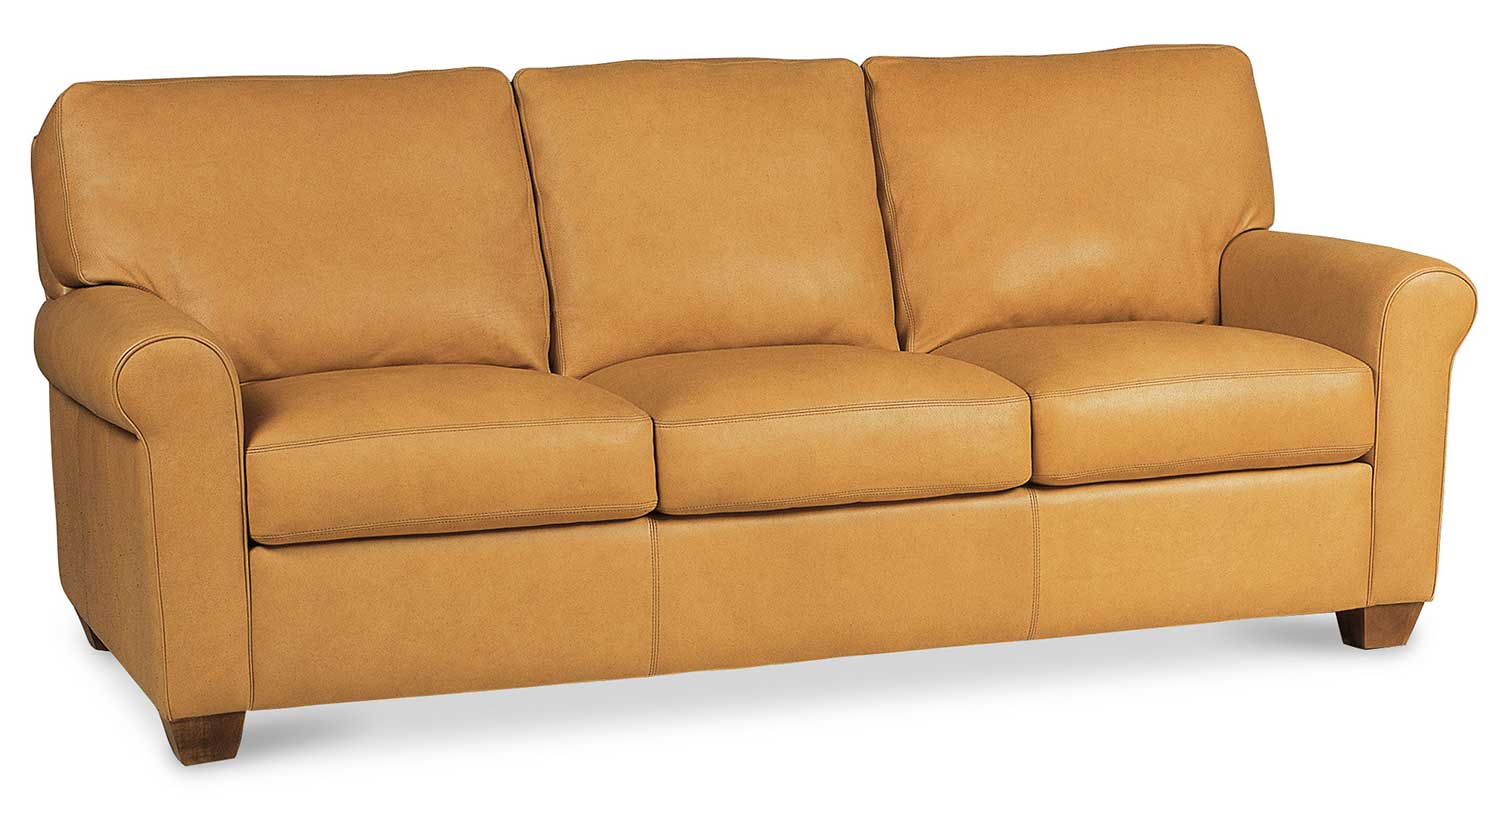 Circle Furniture Savoy Sofa Circle Furniture